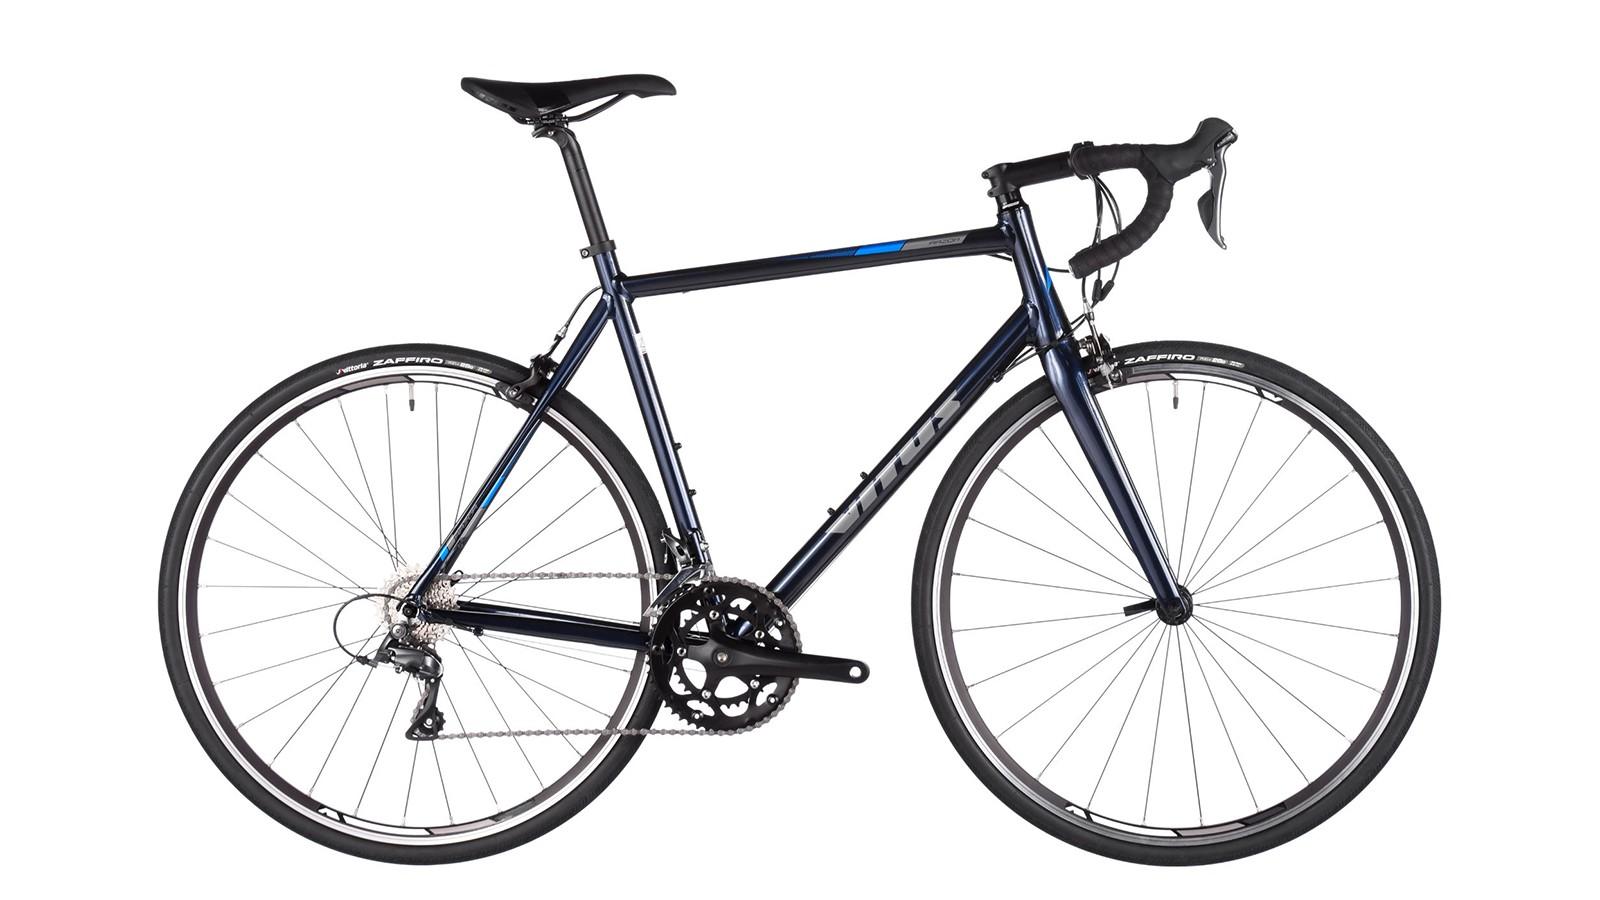 The Vitus Razor is an entry-level road bike, but doesn't disappoint